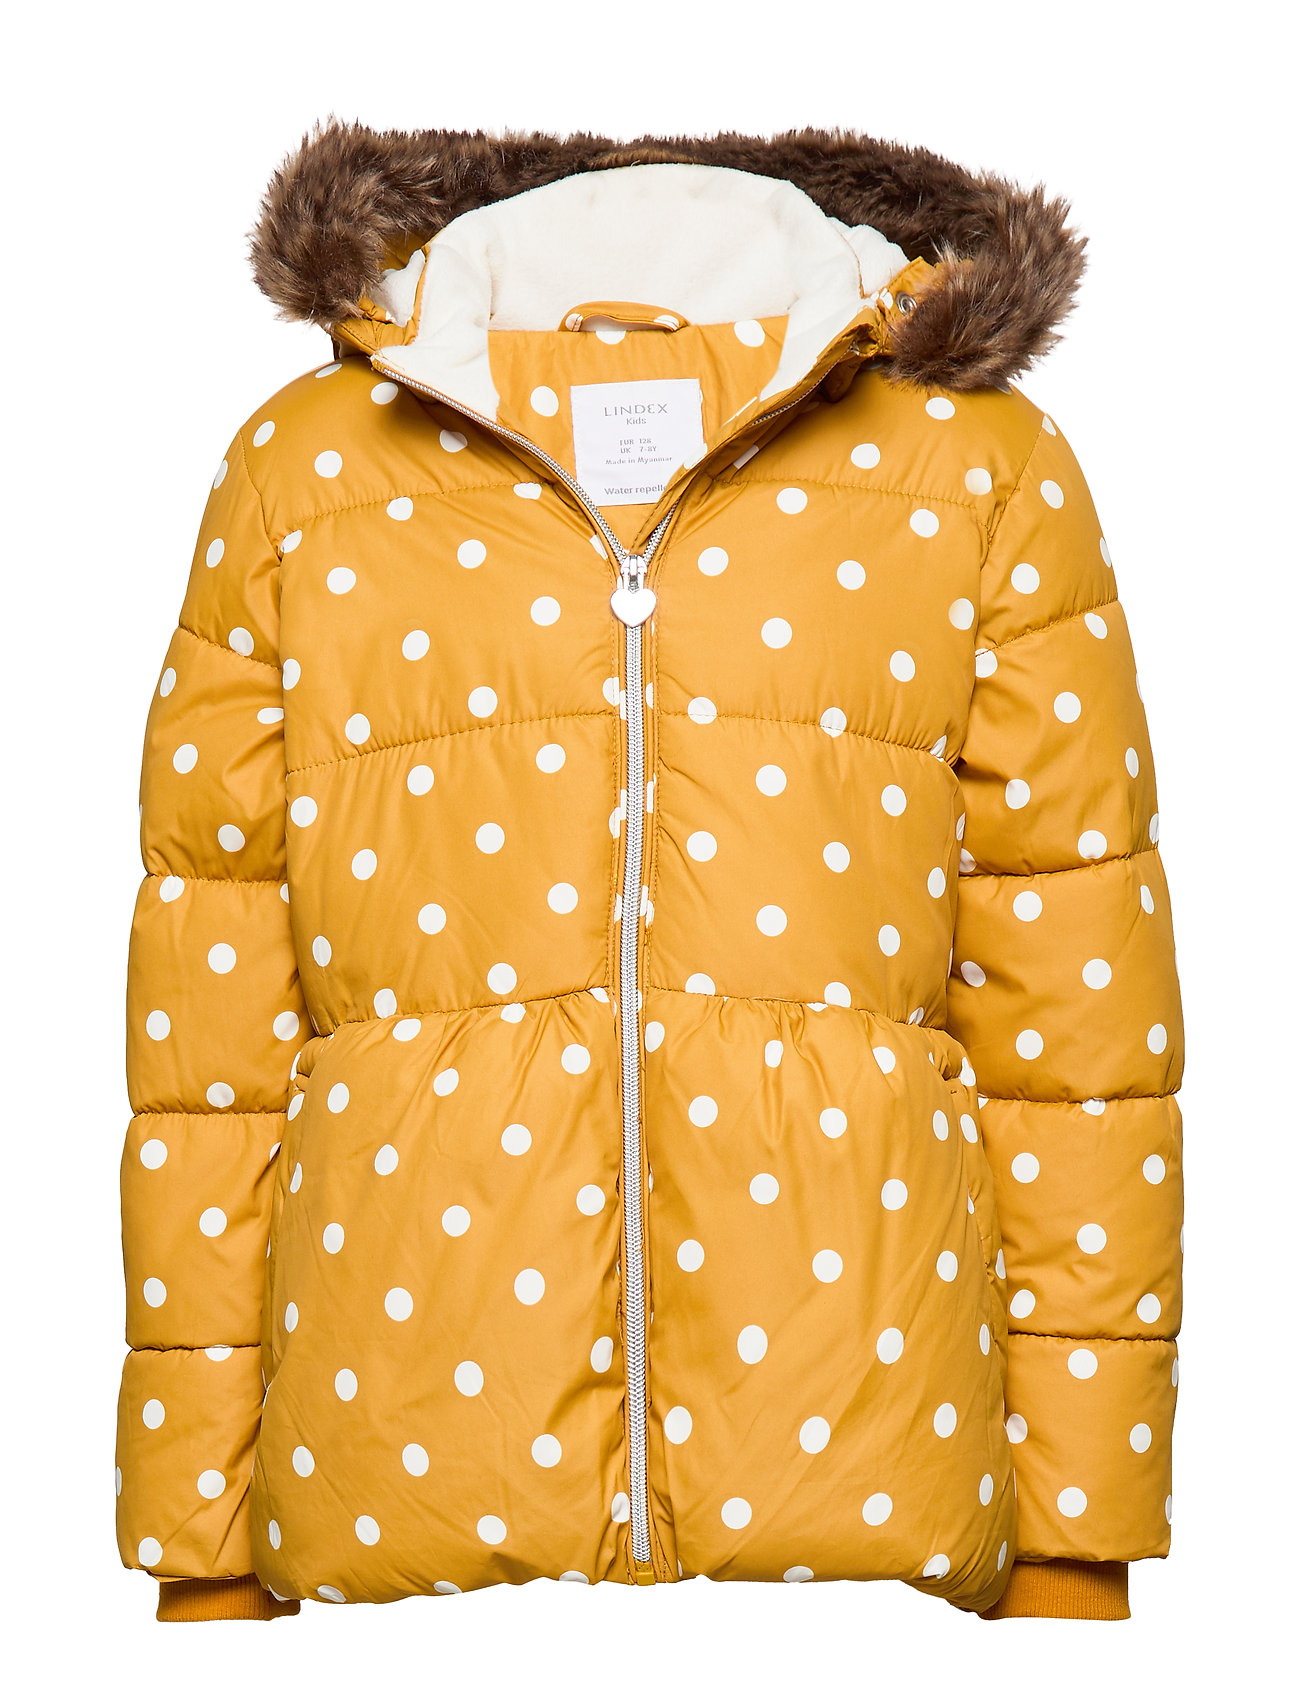 Lindex Patterned puffer jacket with fake fur - DK DUSTY YELLOW